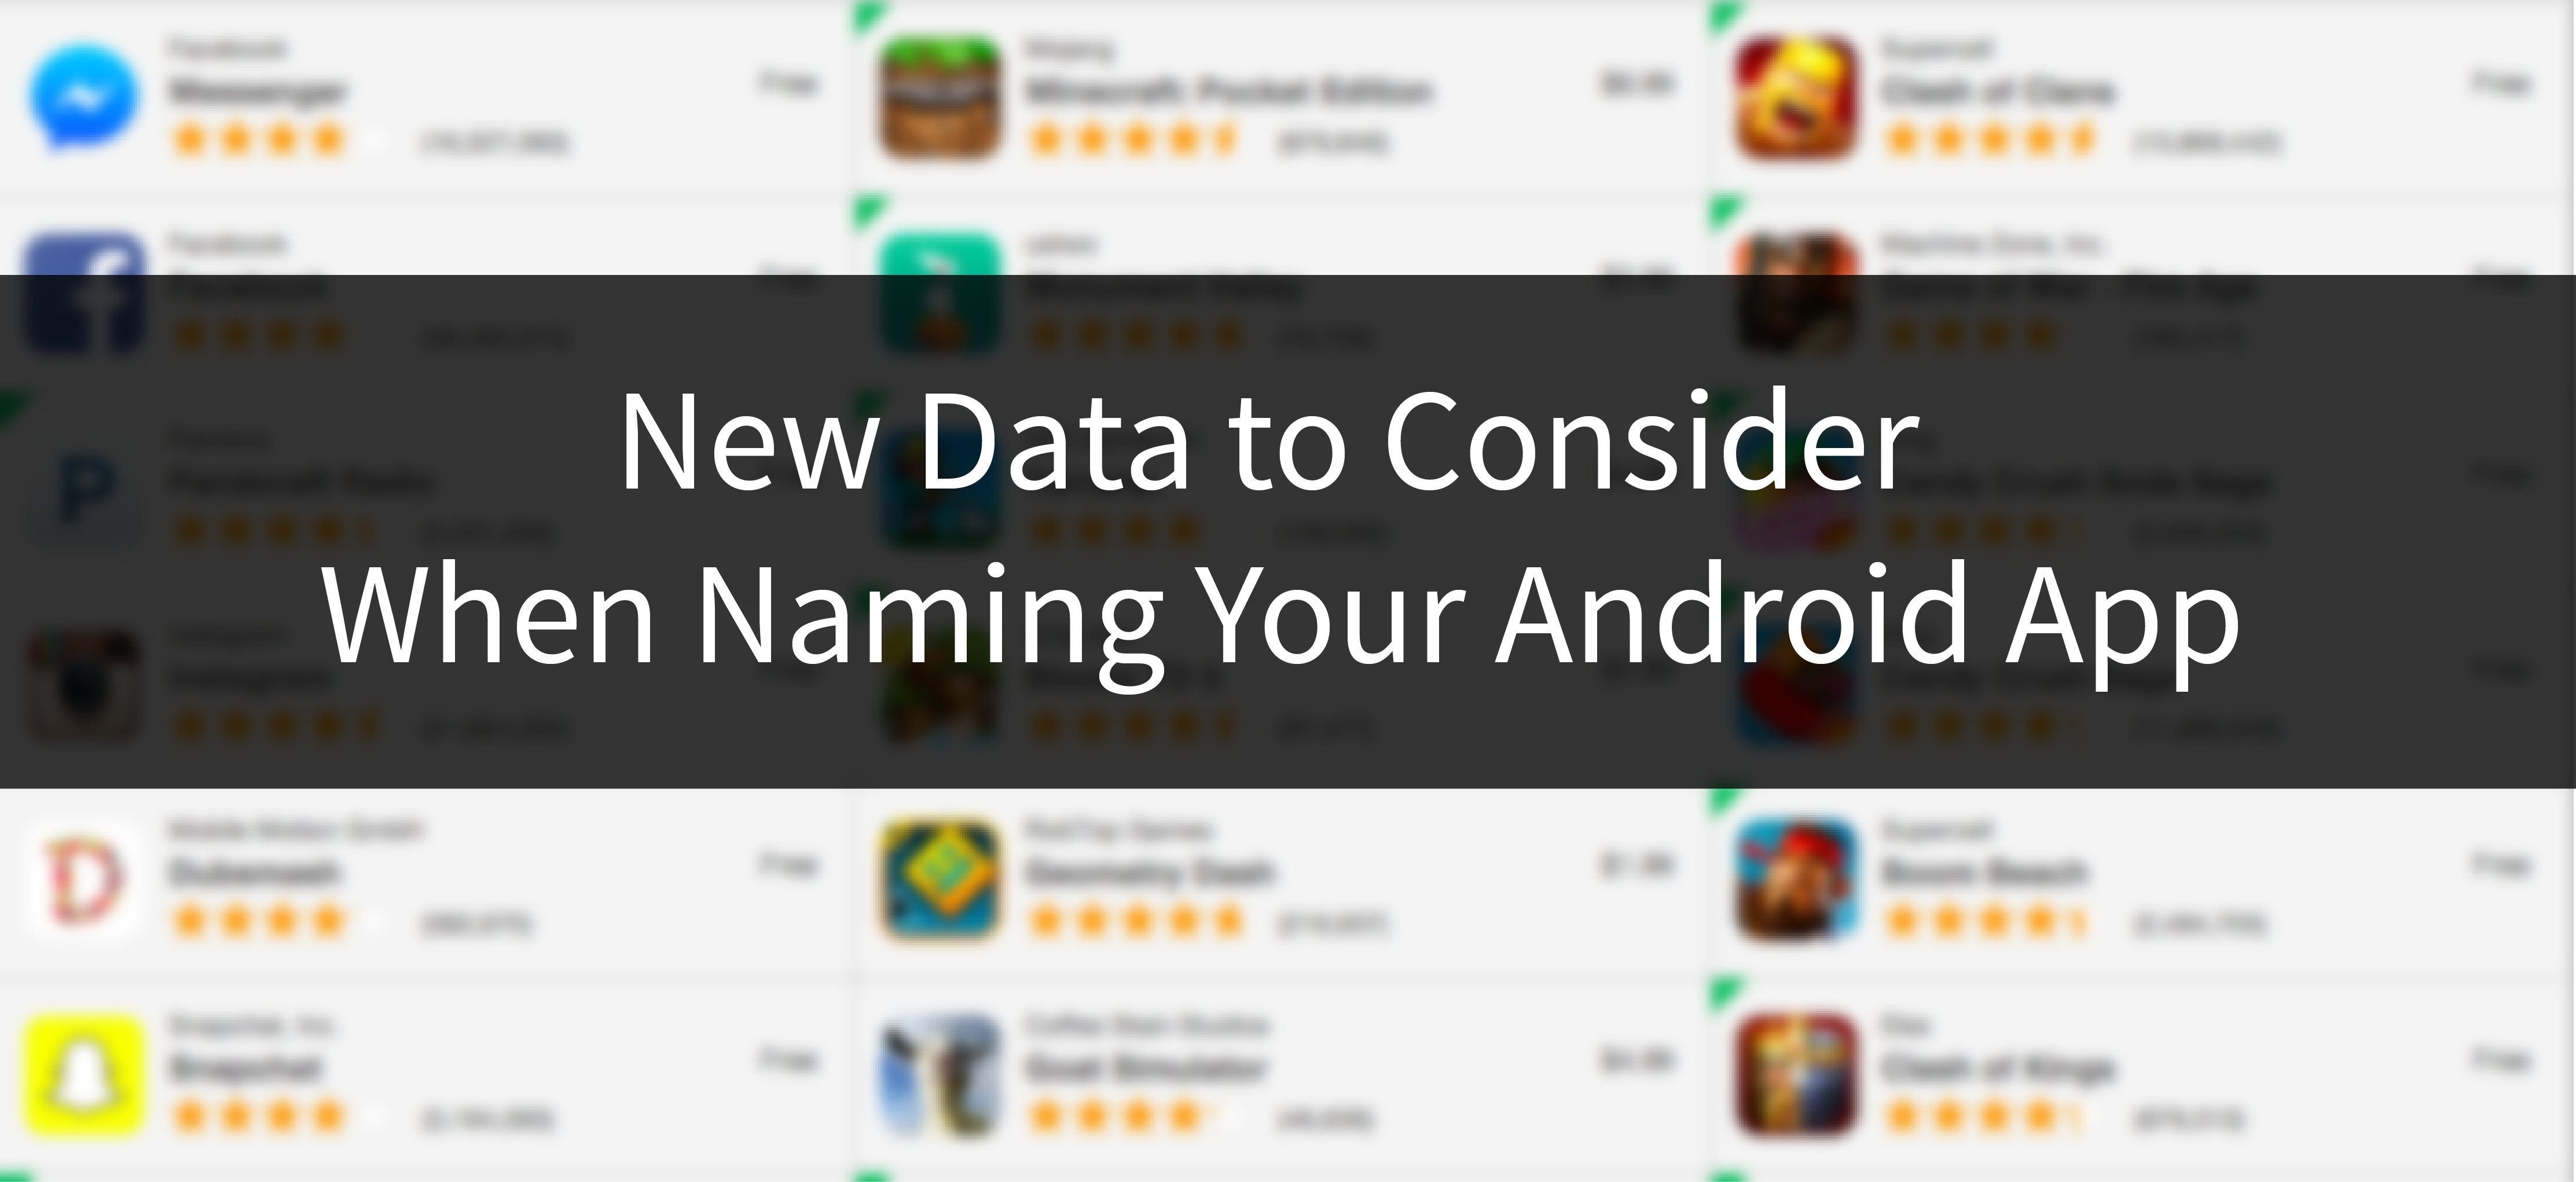 New Data to Consider When Naming Your Android App